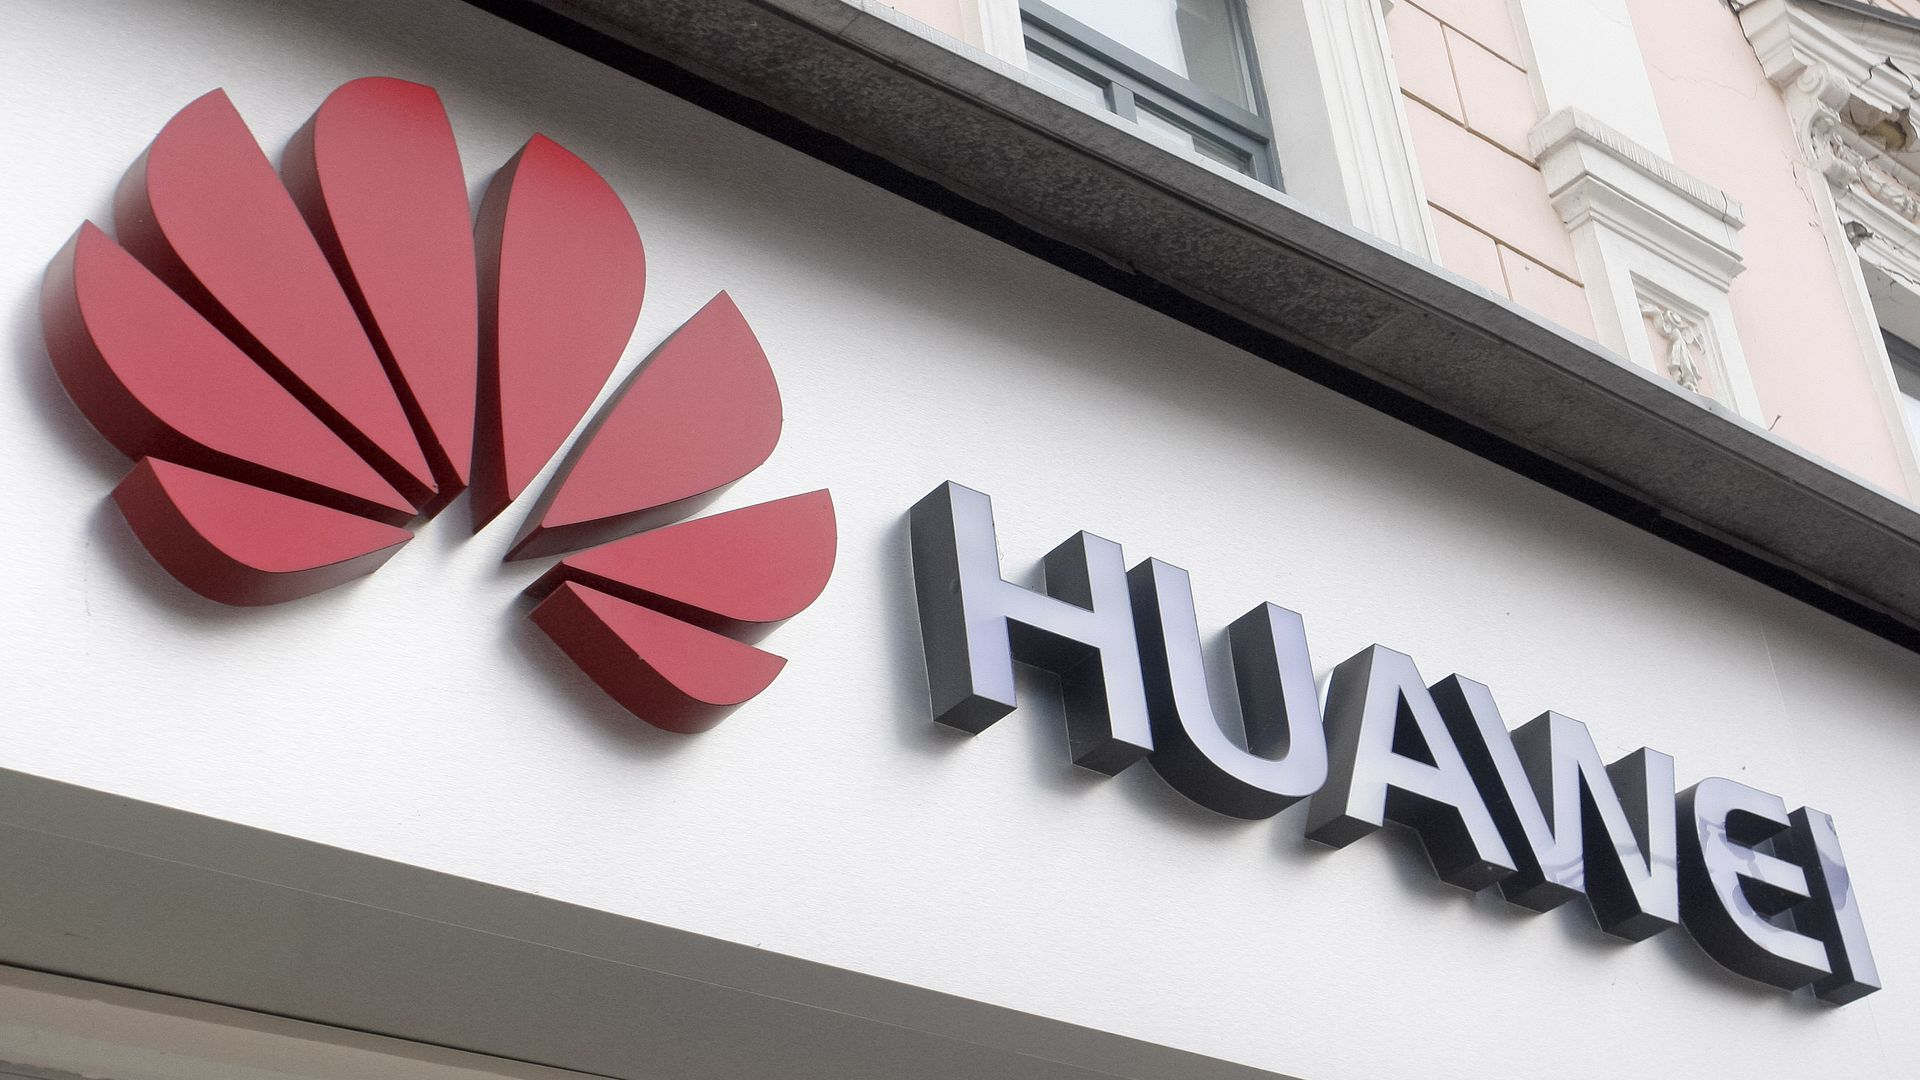 Report: Australian intelligence knows Huawei was used in espionage